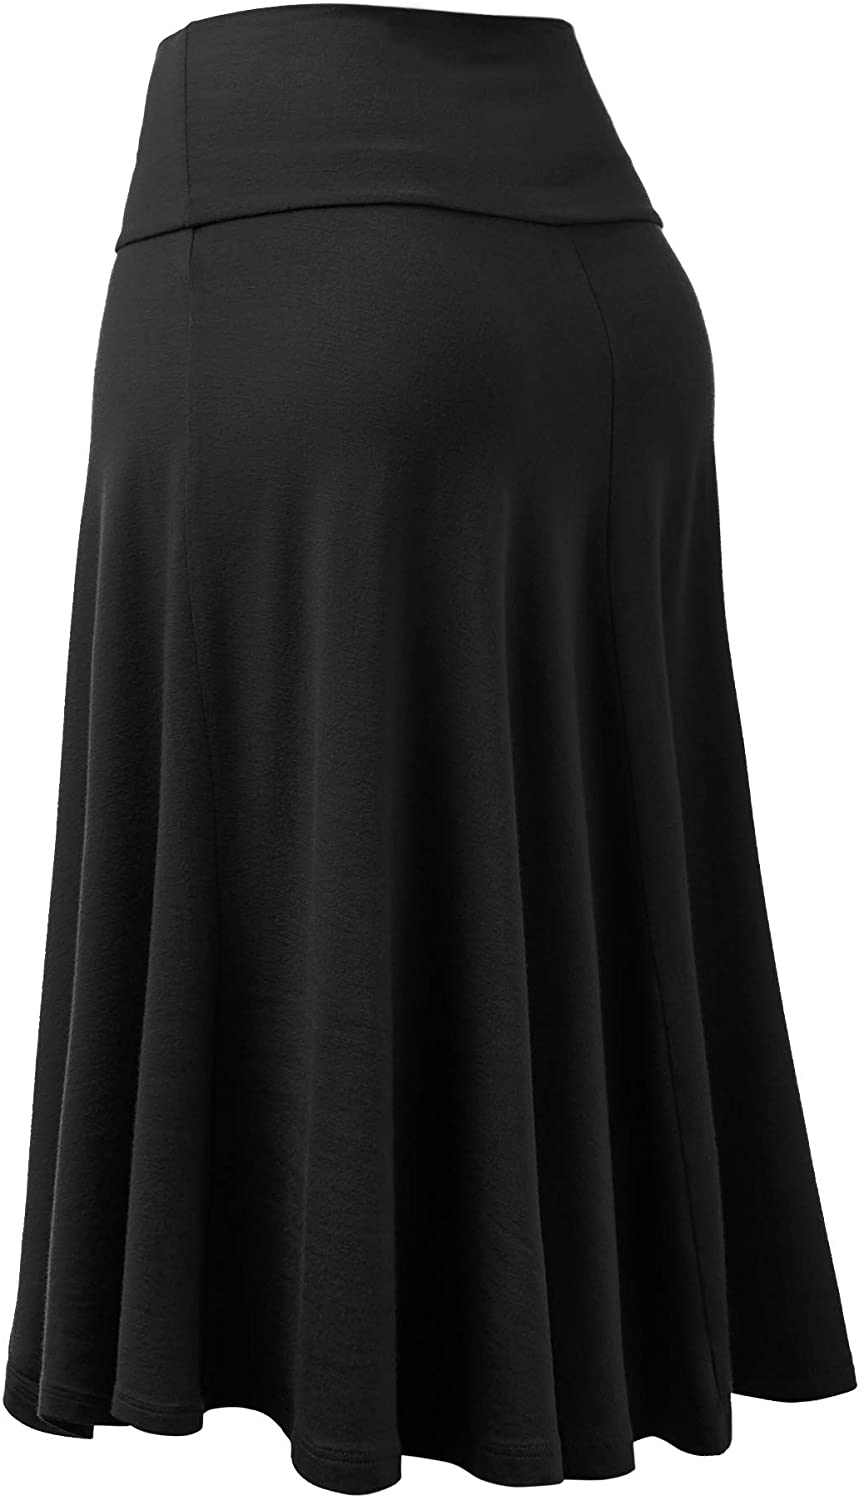 Lock and Love Women's Solid Ombre Lightweight Flare Midi Pull On Closure Skirt S-XXXL Plus Size